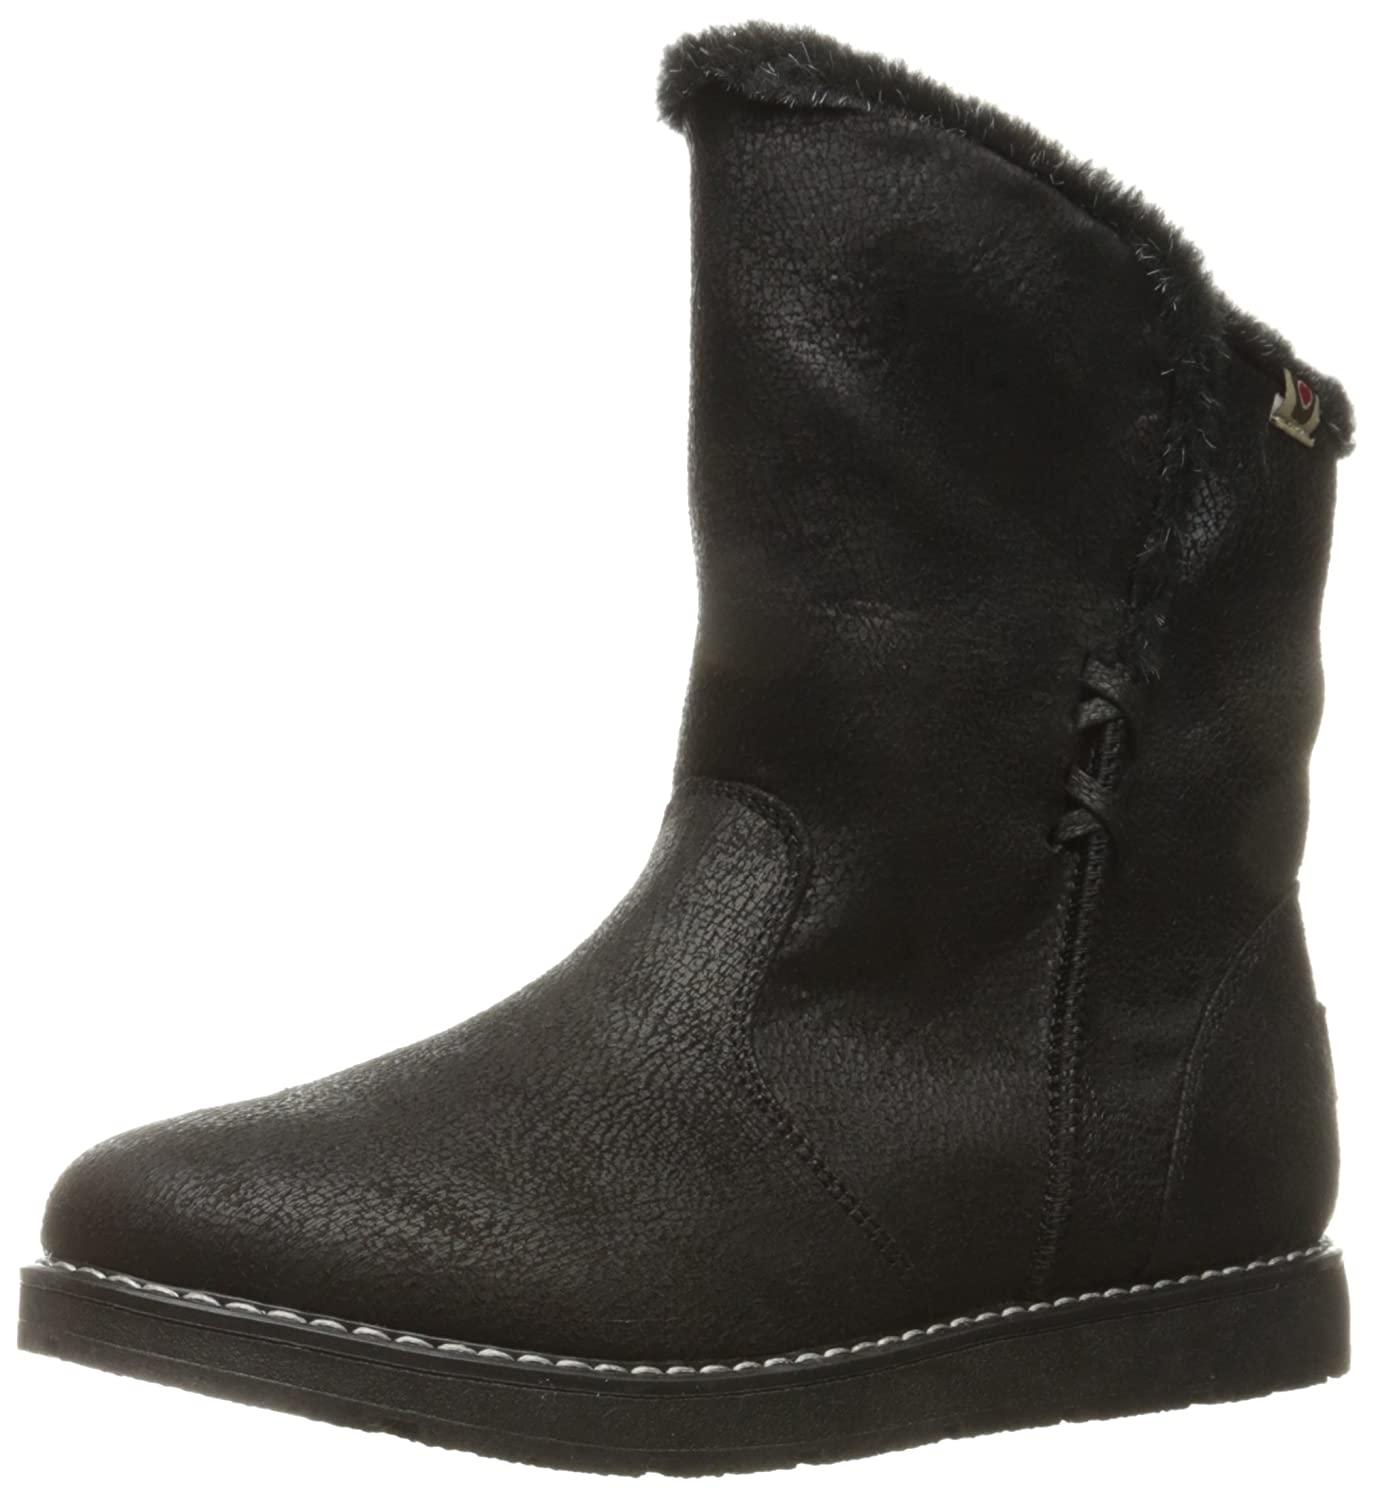 Skechers BOBS from Women's Bobs Alpine Puddle Jump Cozy Winter Boot B01ABY2ON0 6 B(M) US|Black